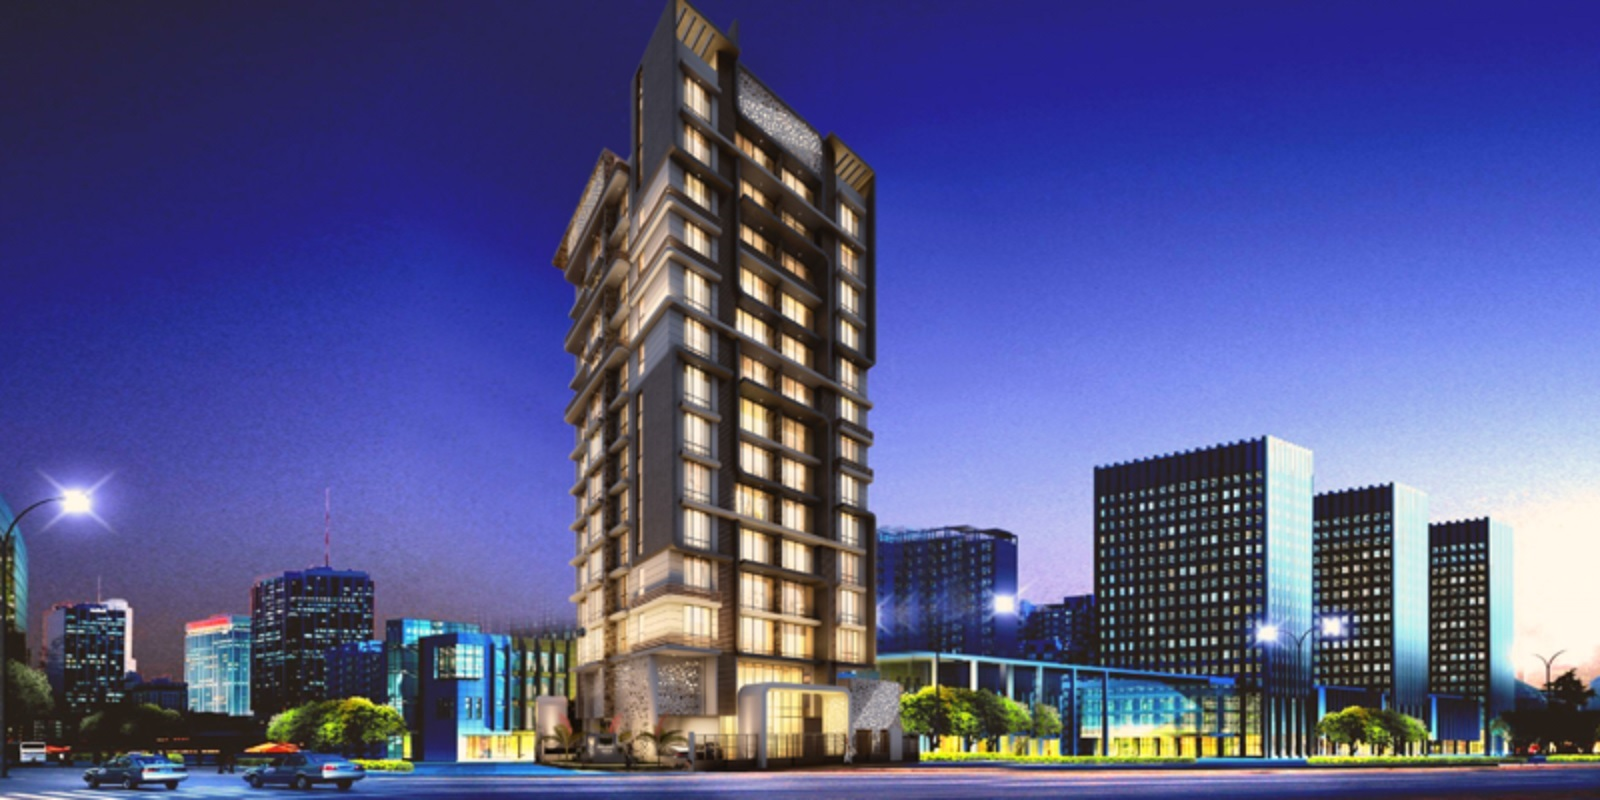 l nagpal jaswant heights project project large image1